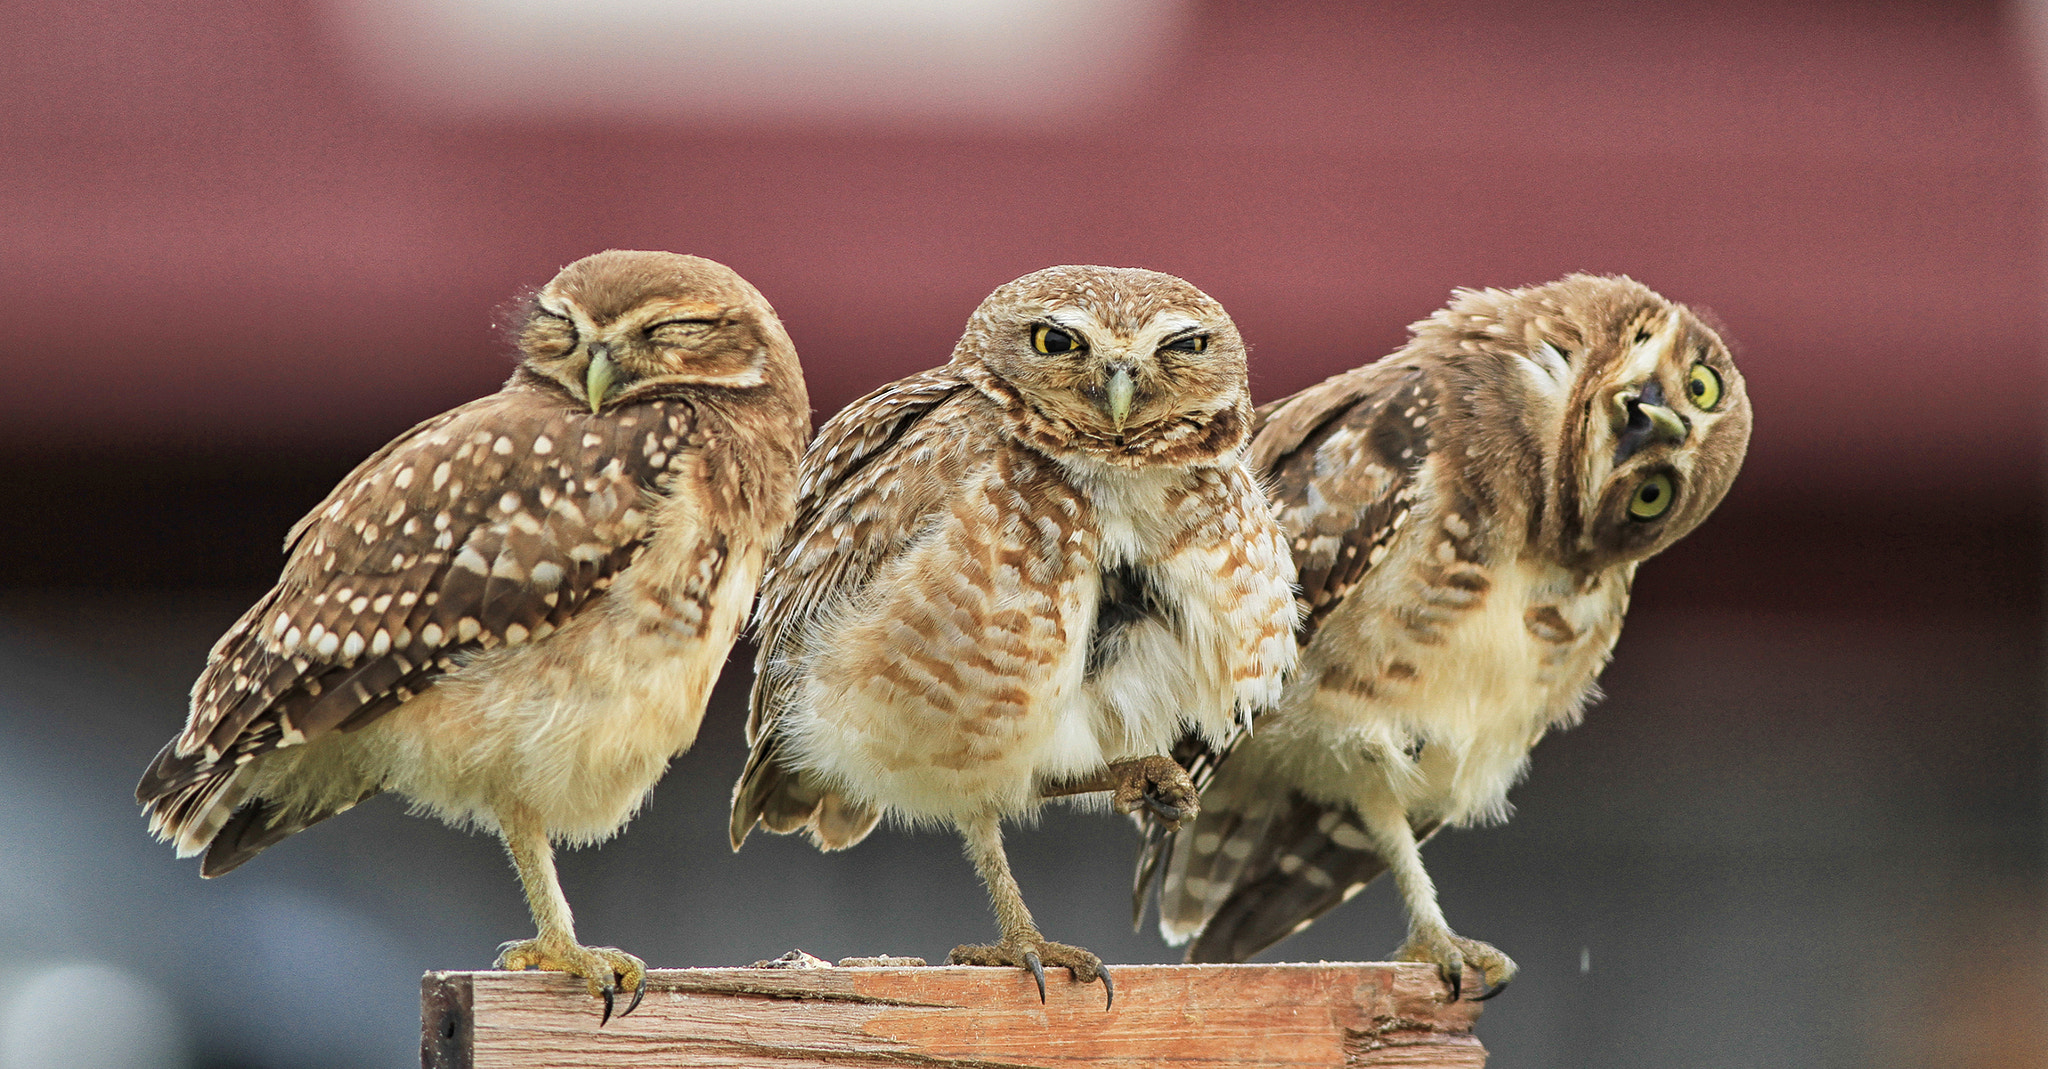 Photograph Brothers II by Itamar Campos on 500px